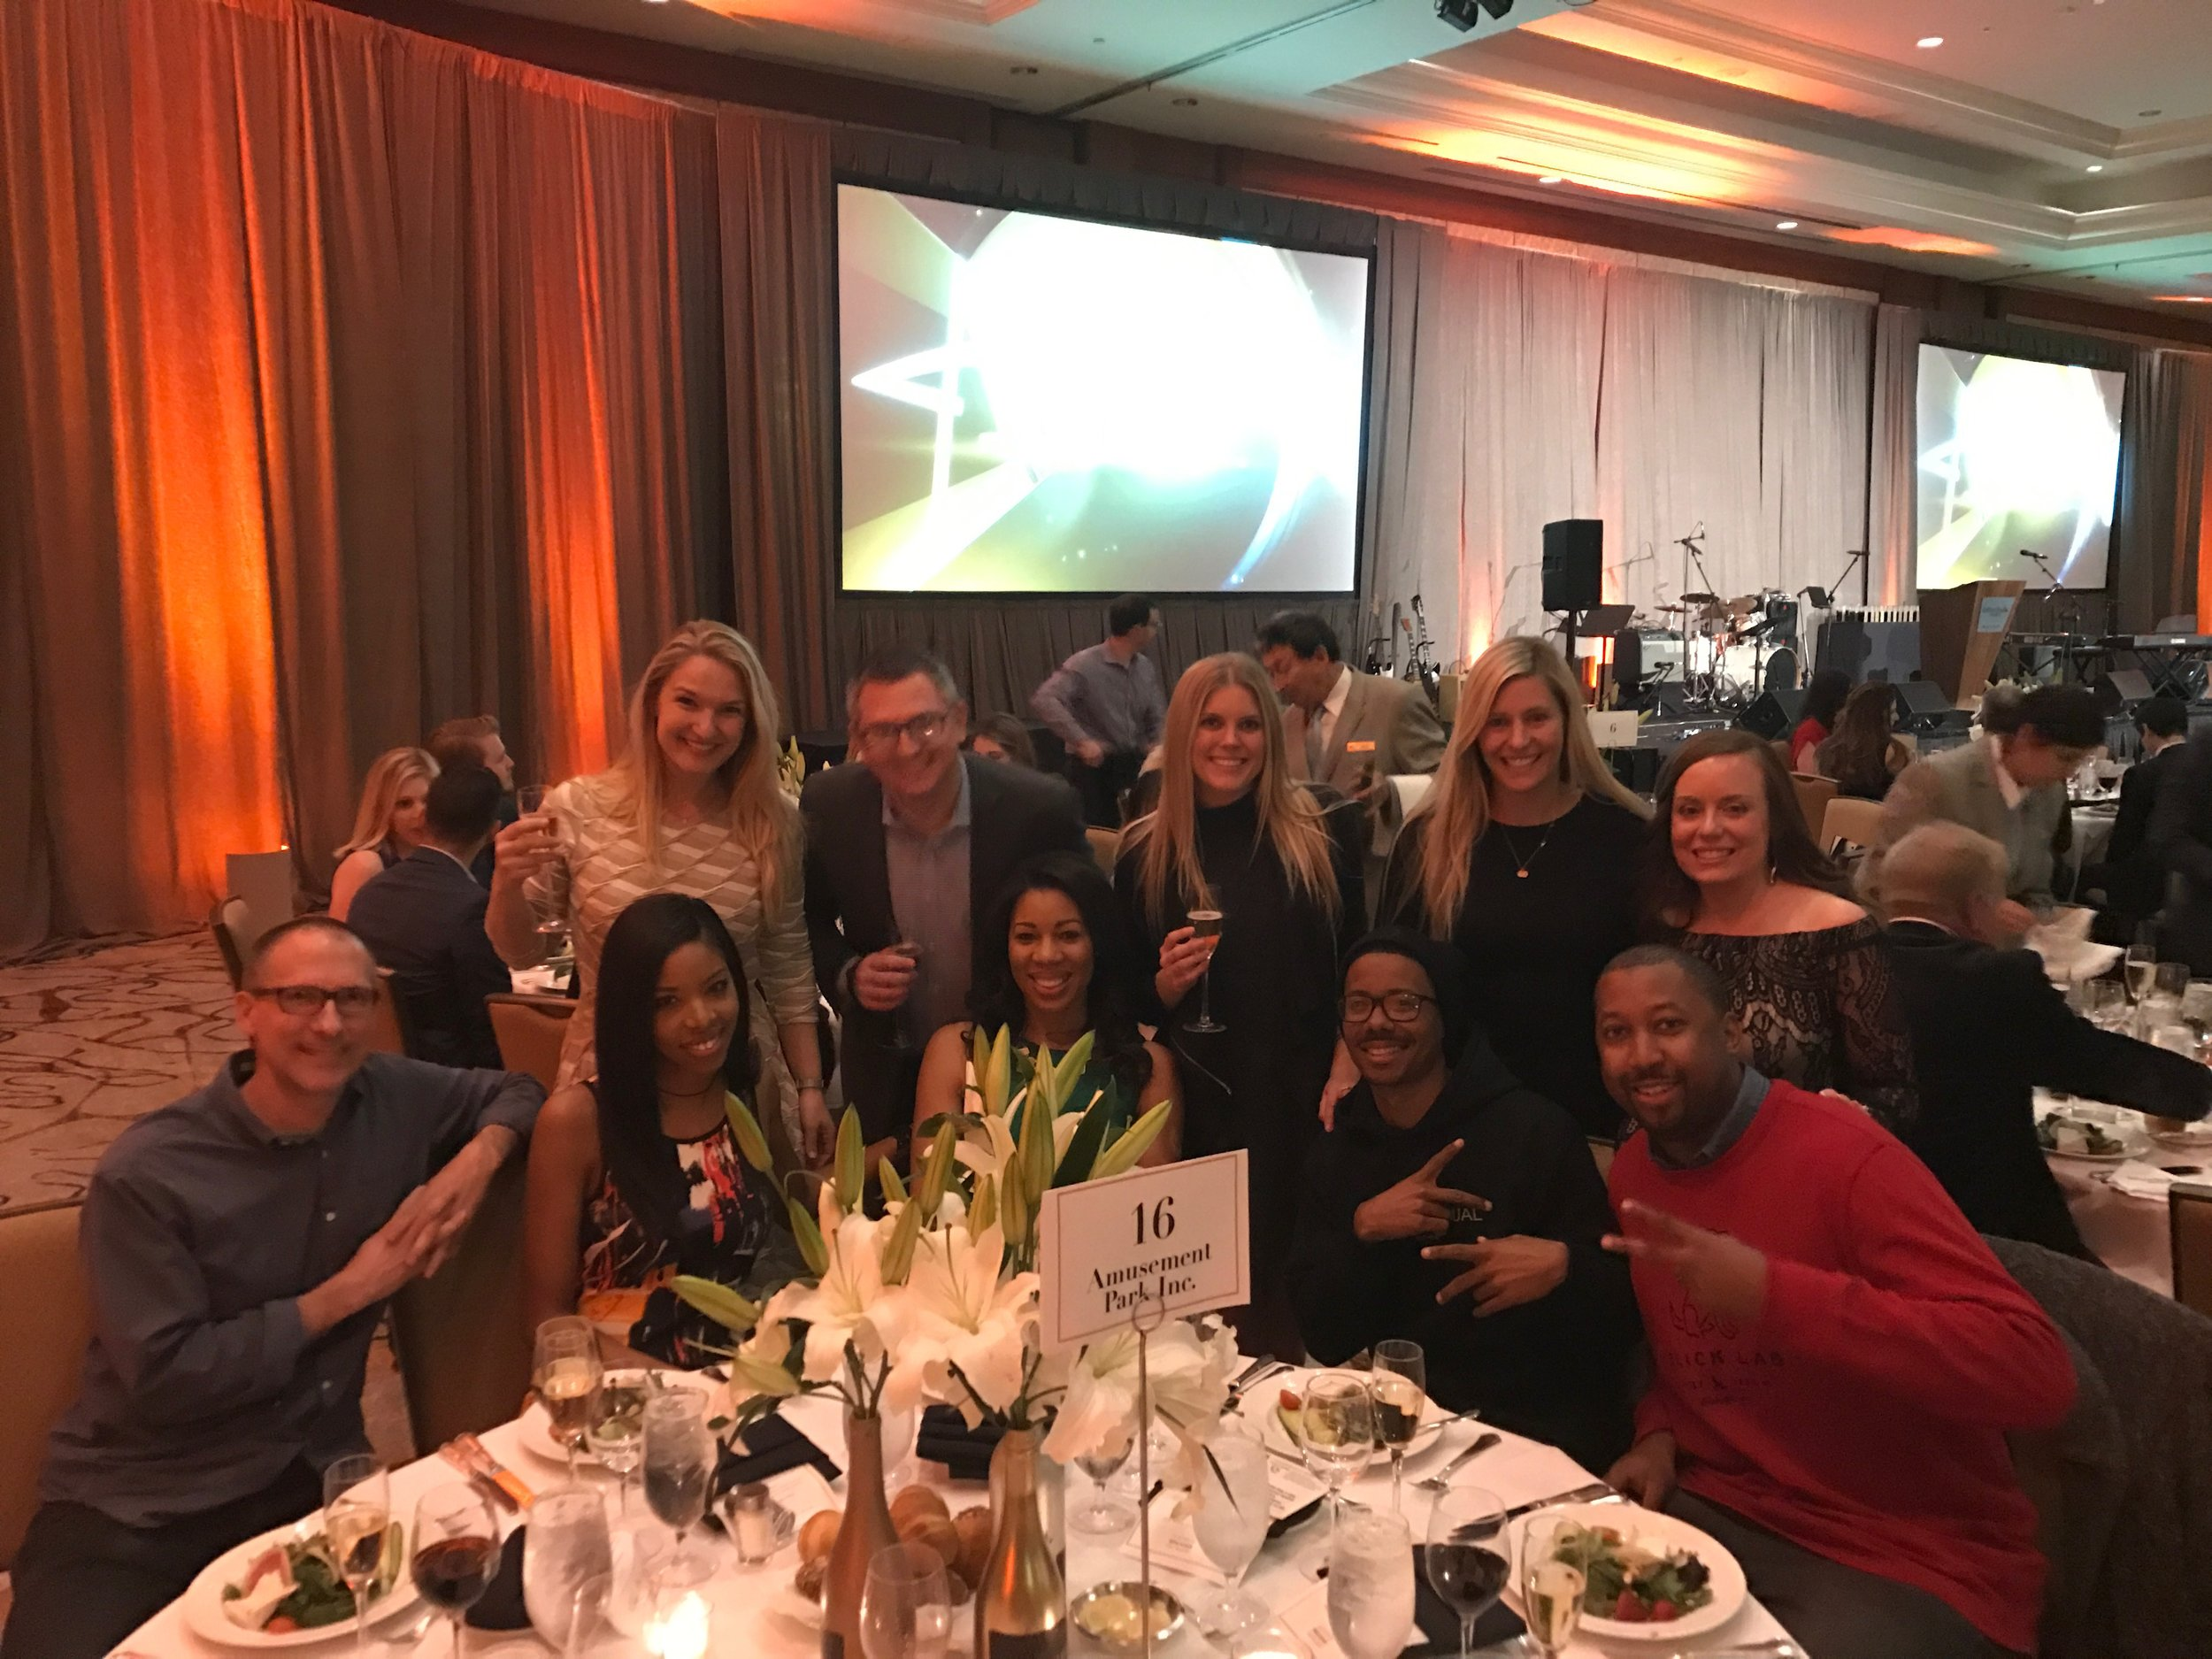 Employees celebrating at the Addy Awards